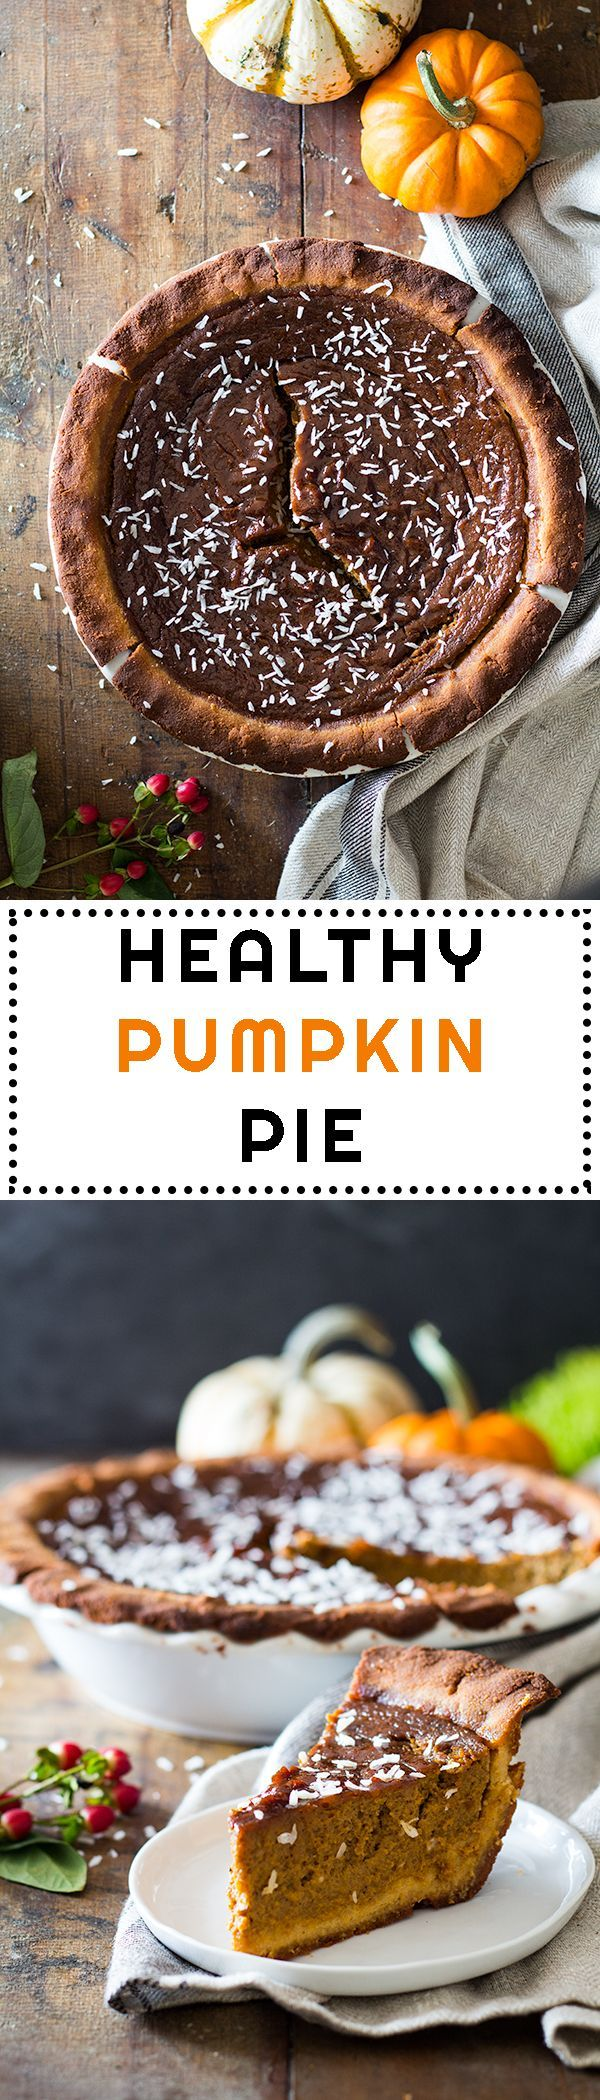 What do you call a gluten-free Pumpkin Pie that's also a refined-sugar-free and dairy-free Pumpkin Pie? EASY! A Healthy Pumpkin Pie! This specific one could also be called The Best Healthy Pumpkin Pie in the history of Pies! Yes, seriously!